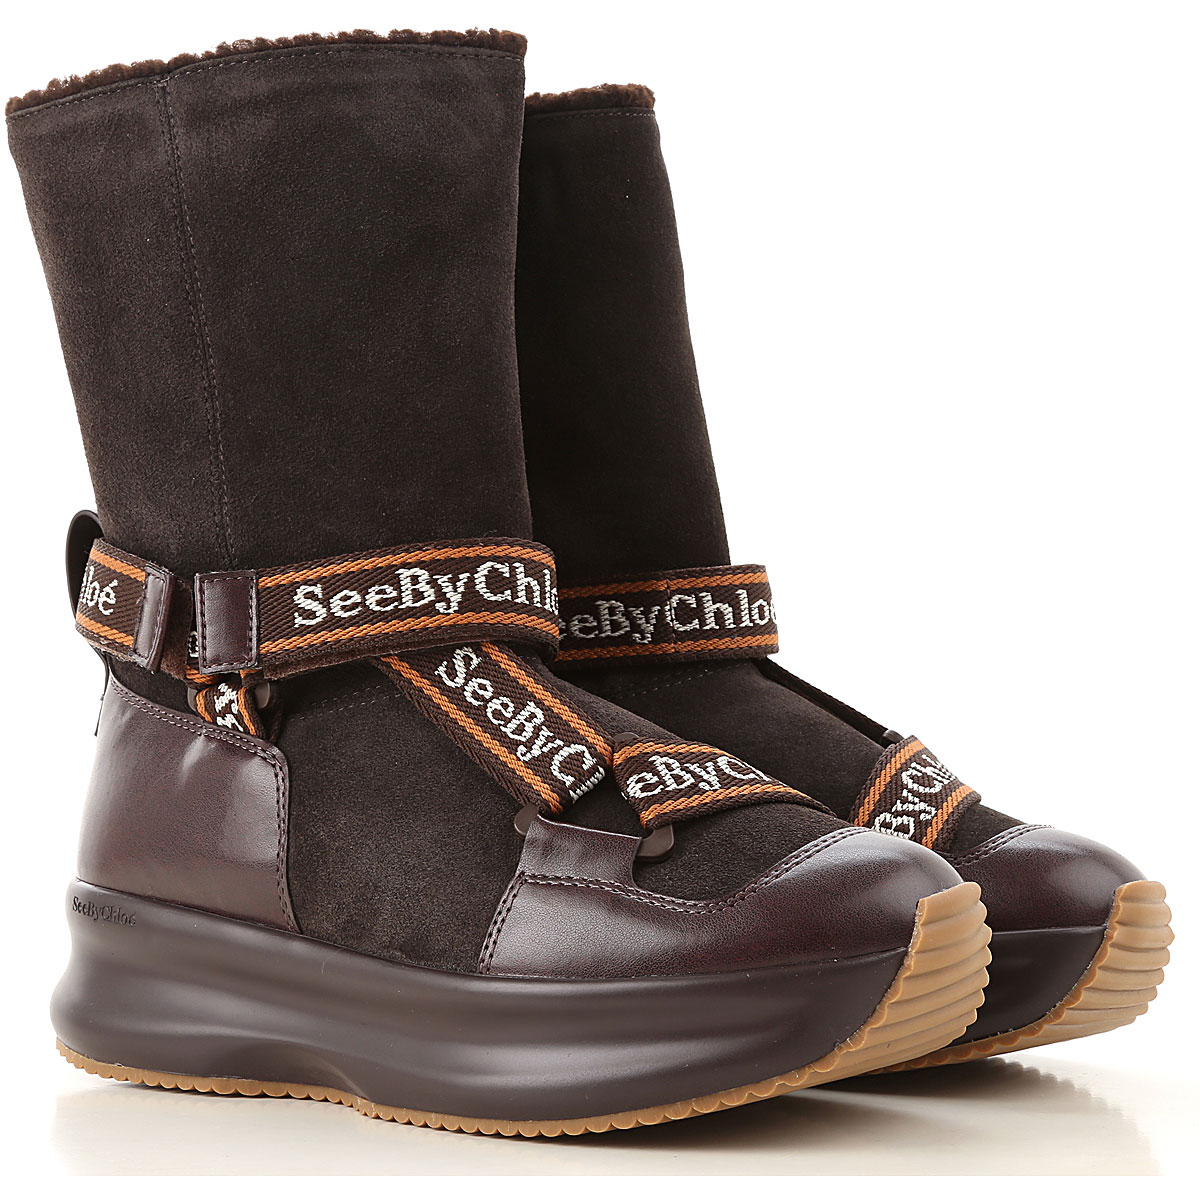 See By Chloe Boots for Women, Booties On Sale, Brown, Leather, 2019, 10 11 6 7 8 9